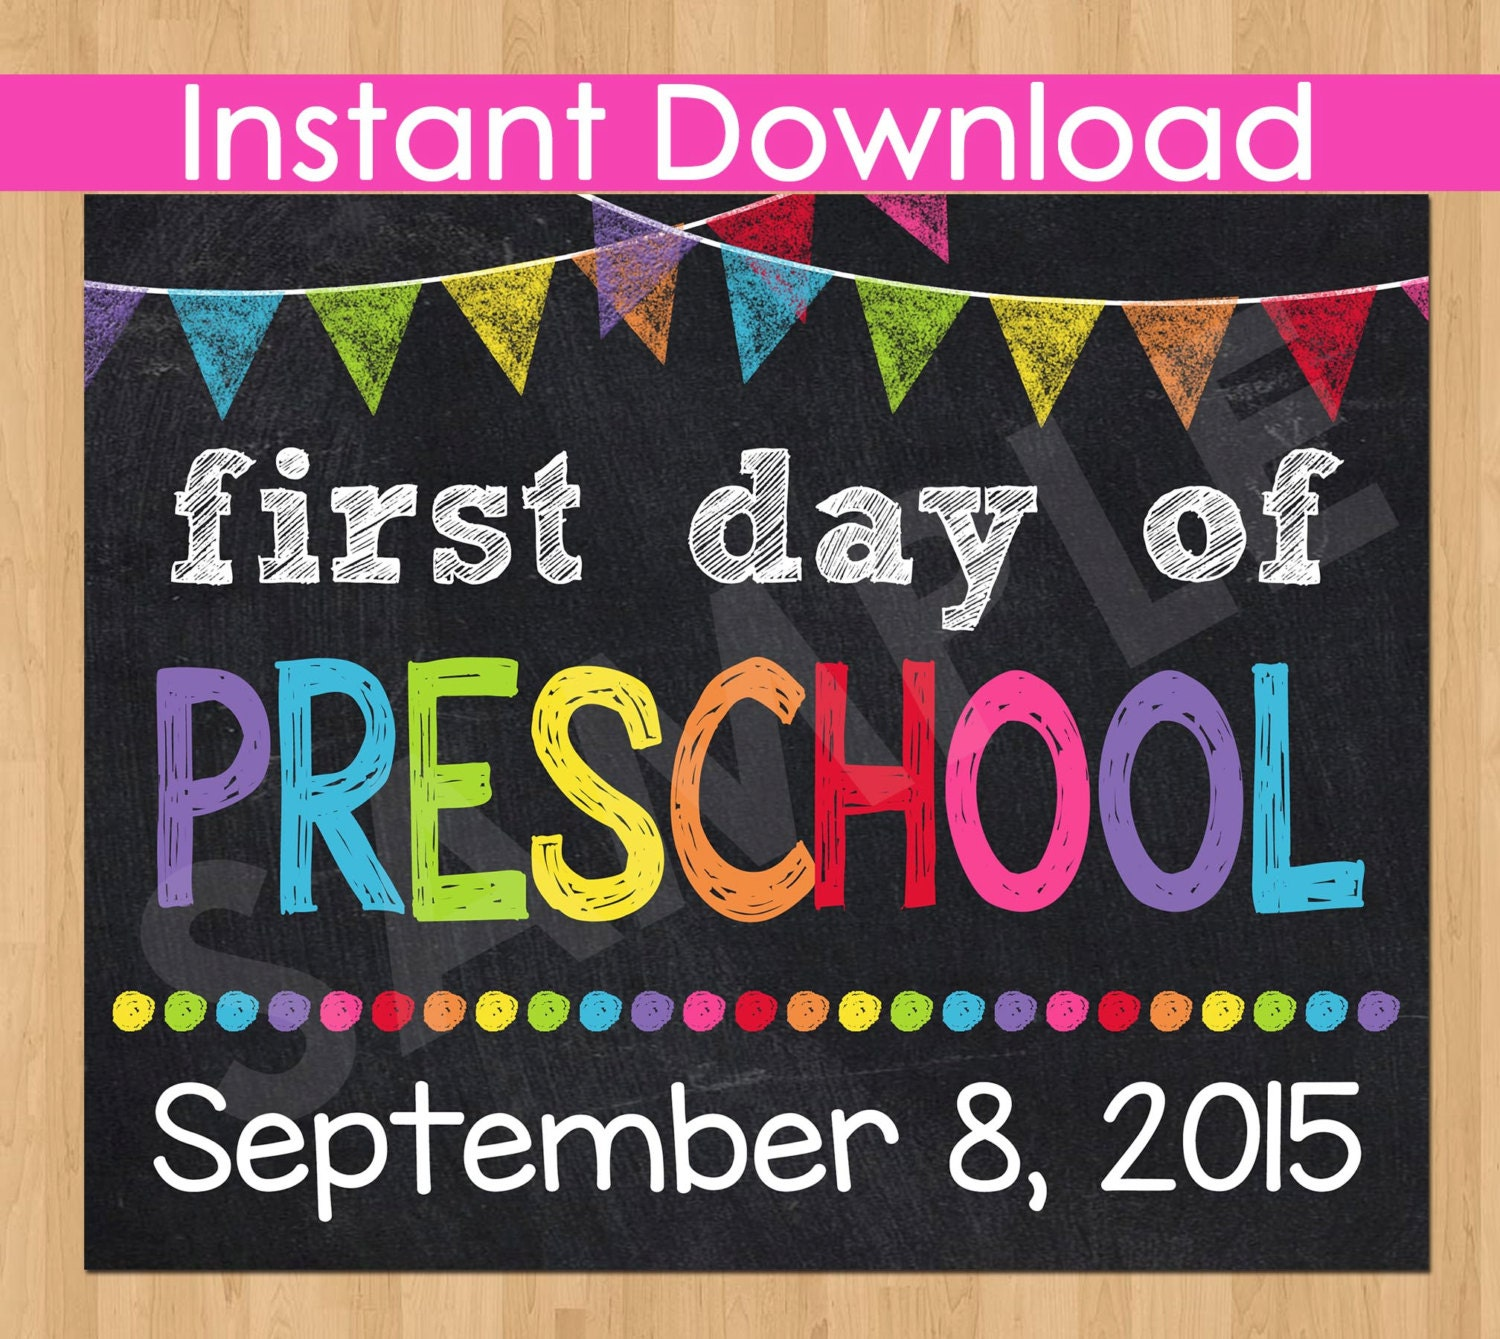 It is a graphic of Amazing First Day of Preschool Printable Sign